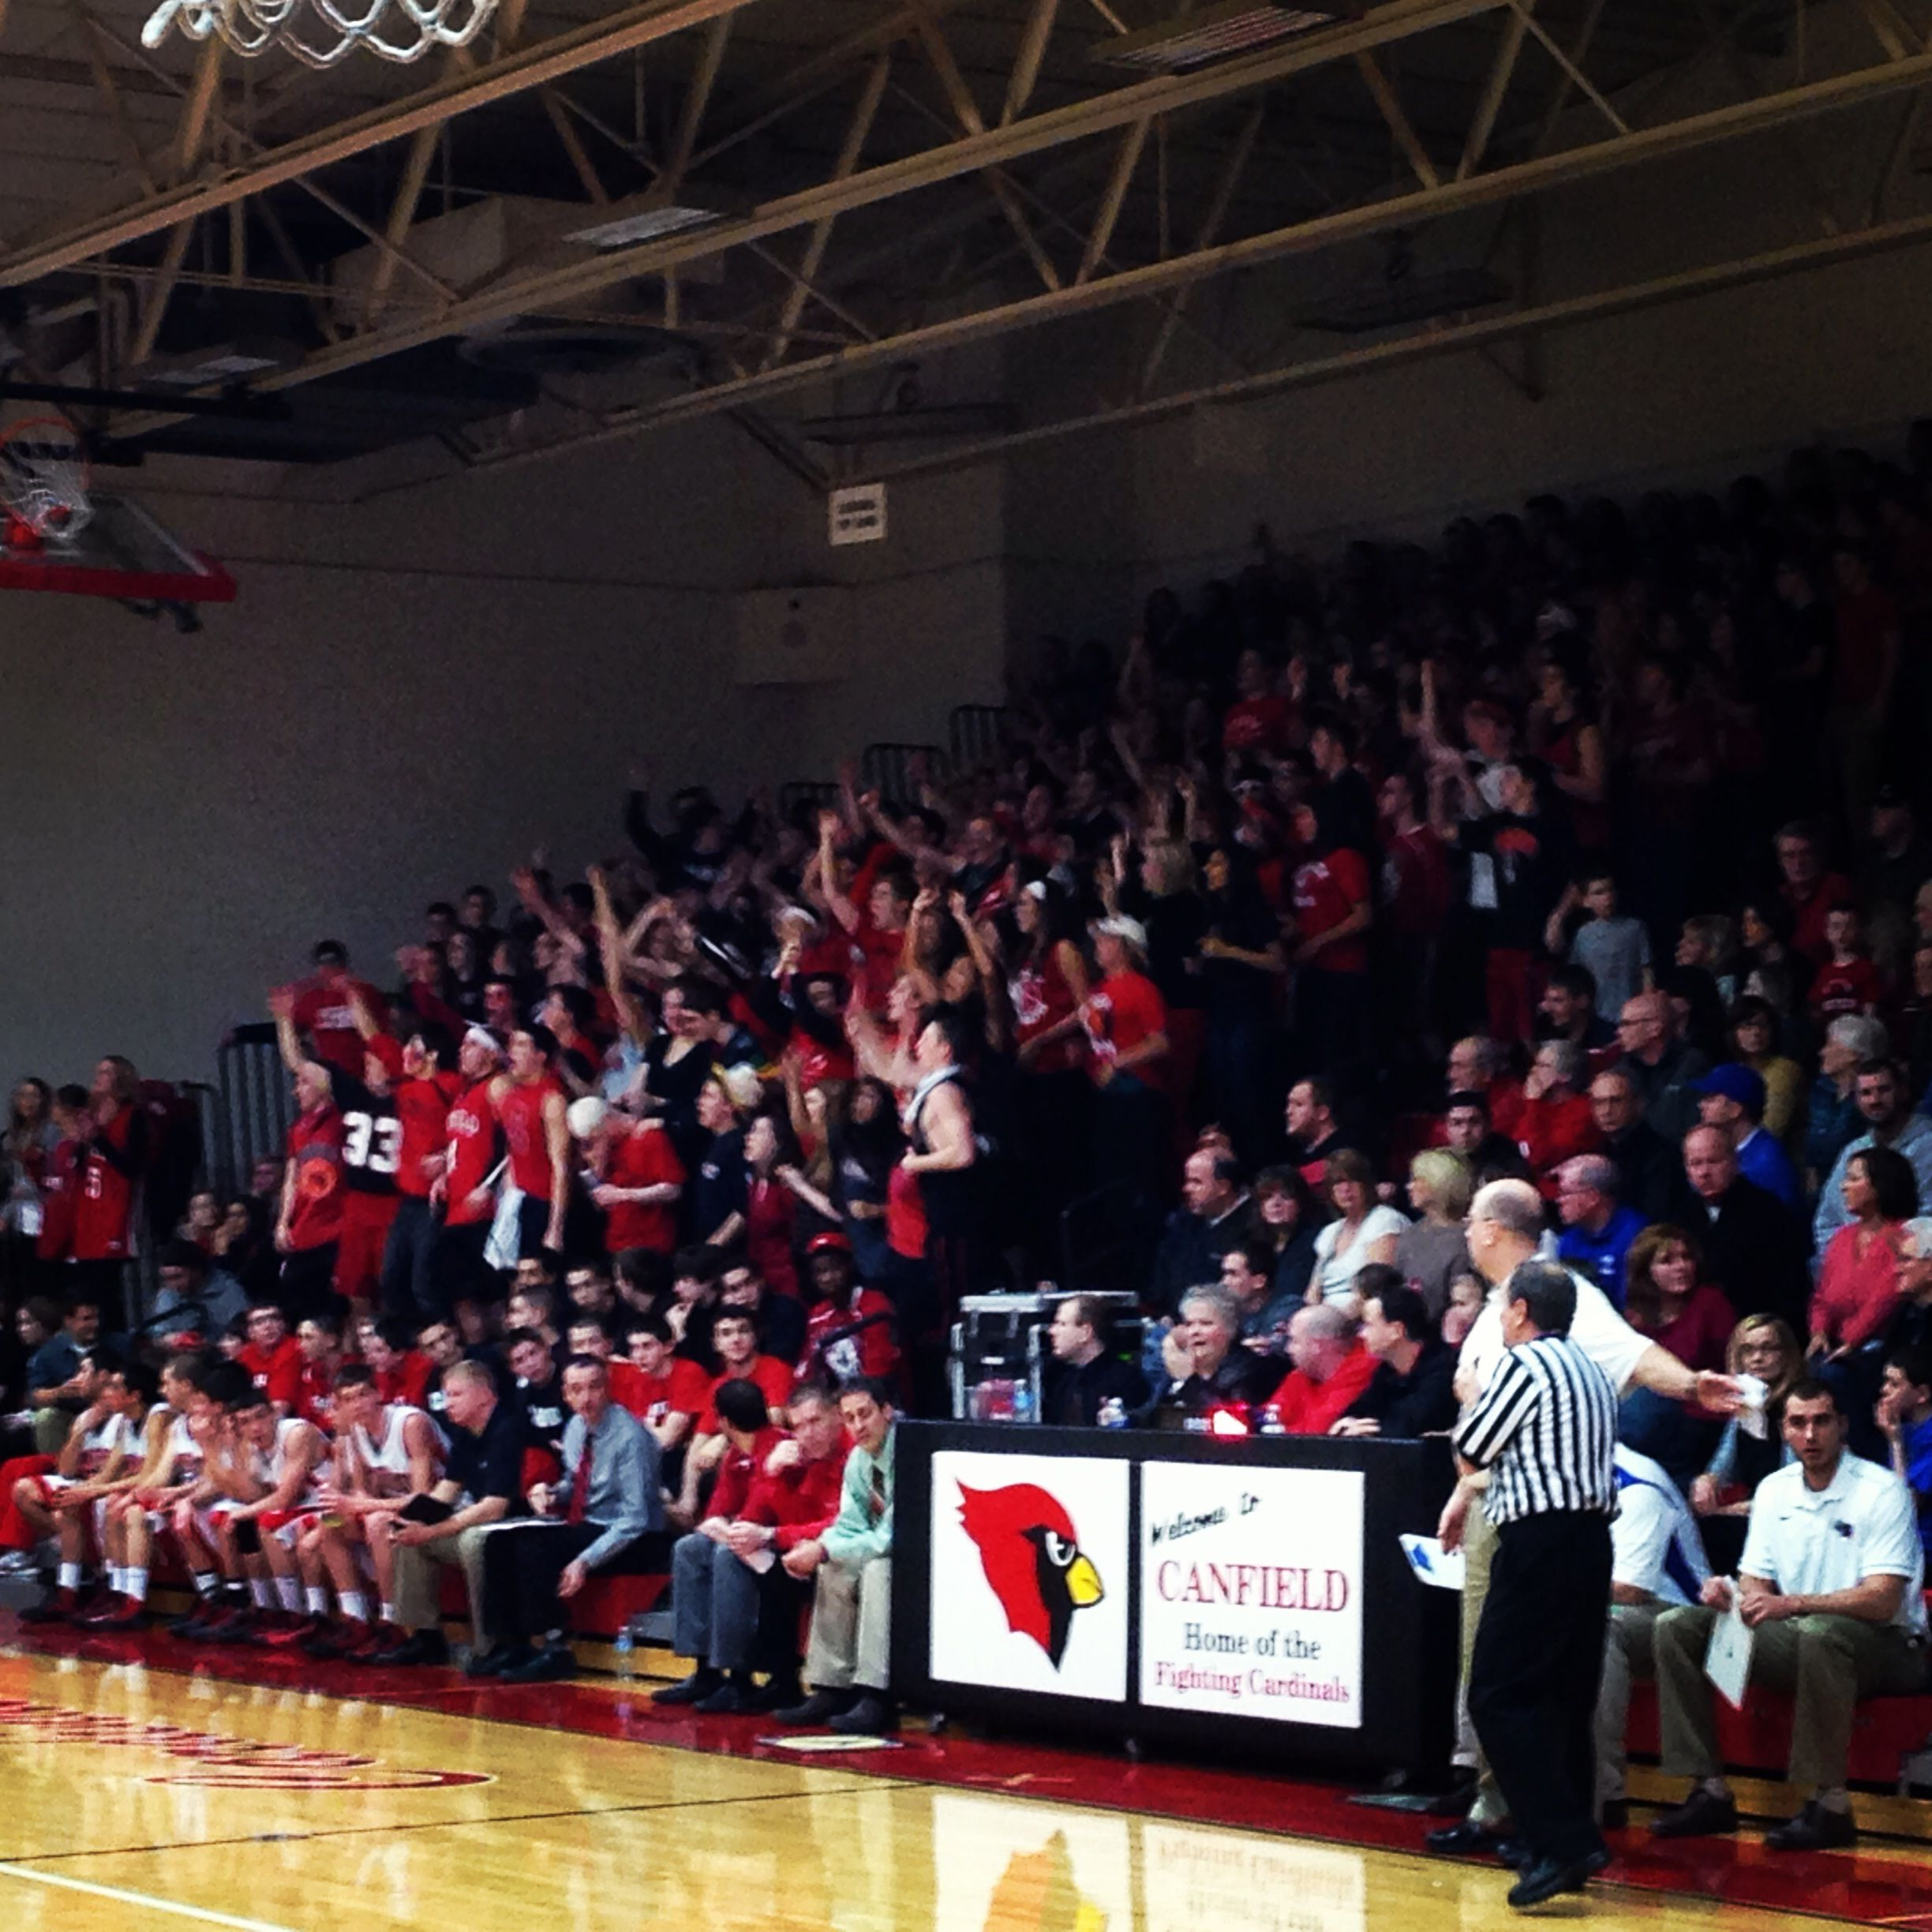 The crowd tonight at the sold out PolandCanfield boys